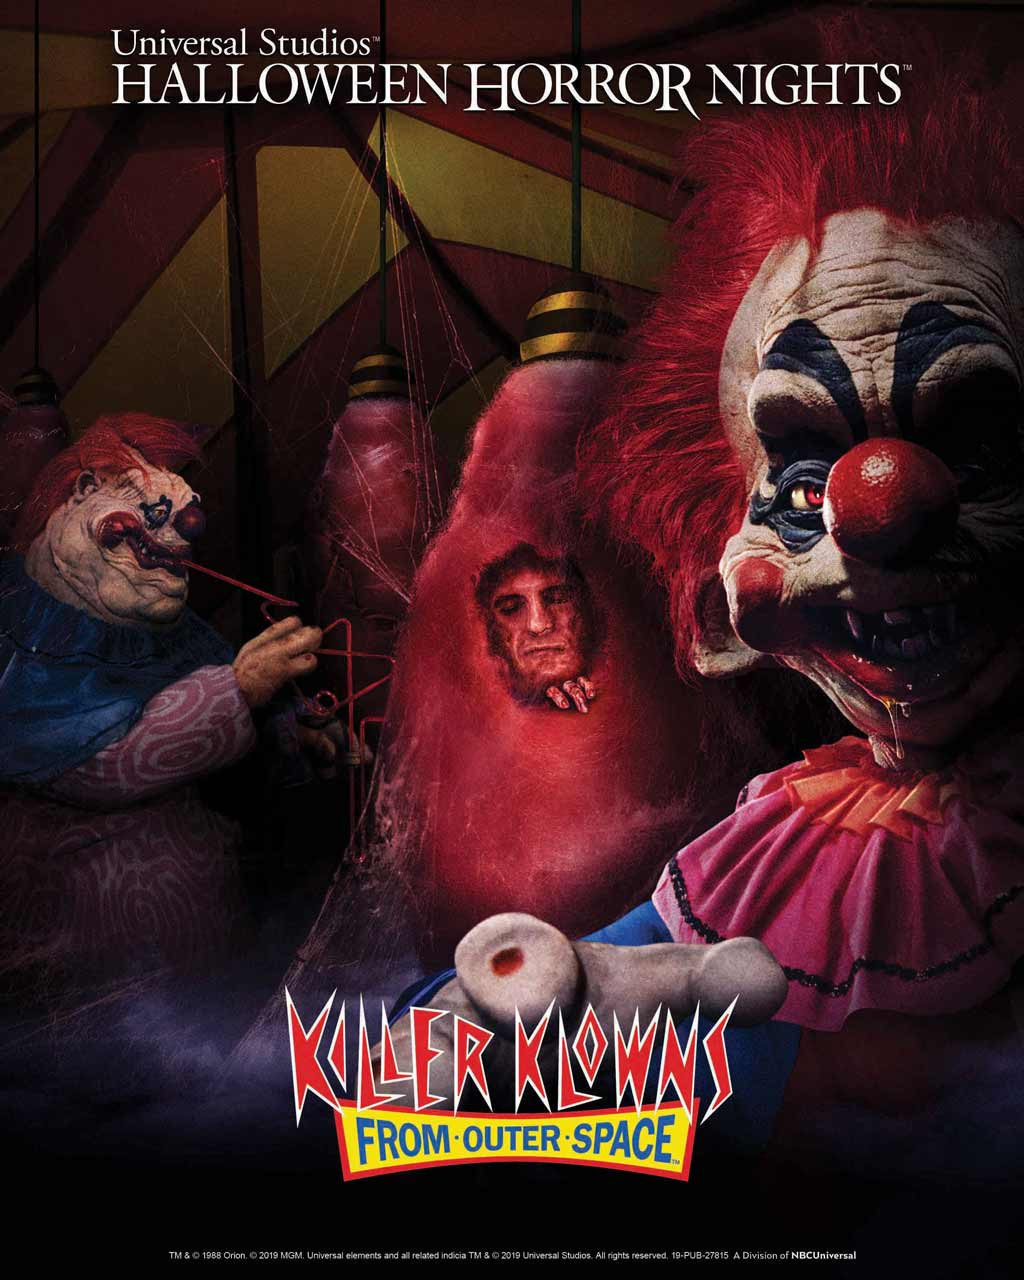 Haunted Houses at Halloween Horror Nights 2019 | HHN Houses | Killer Klowns from Outer Space